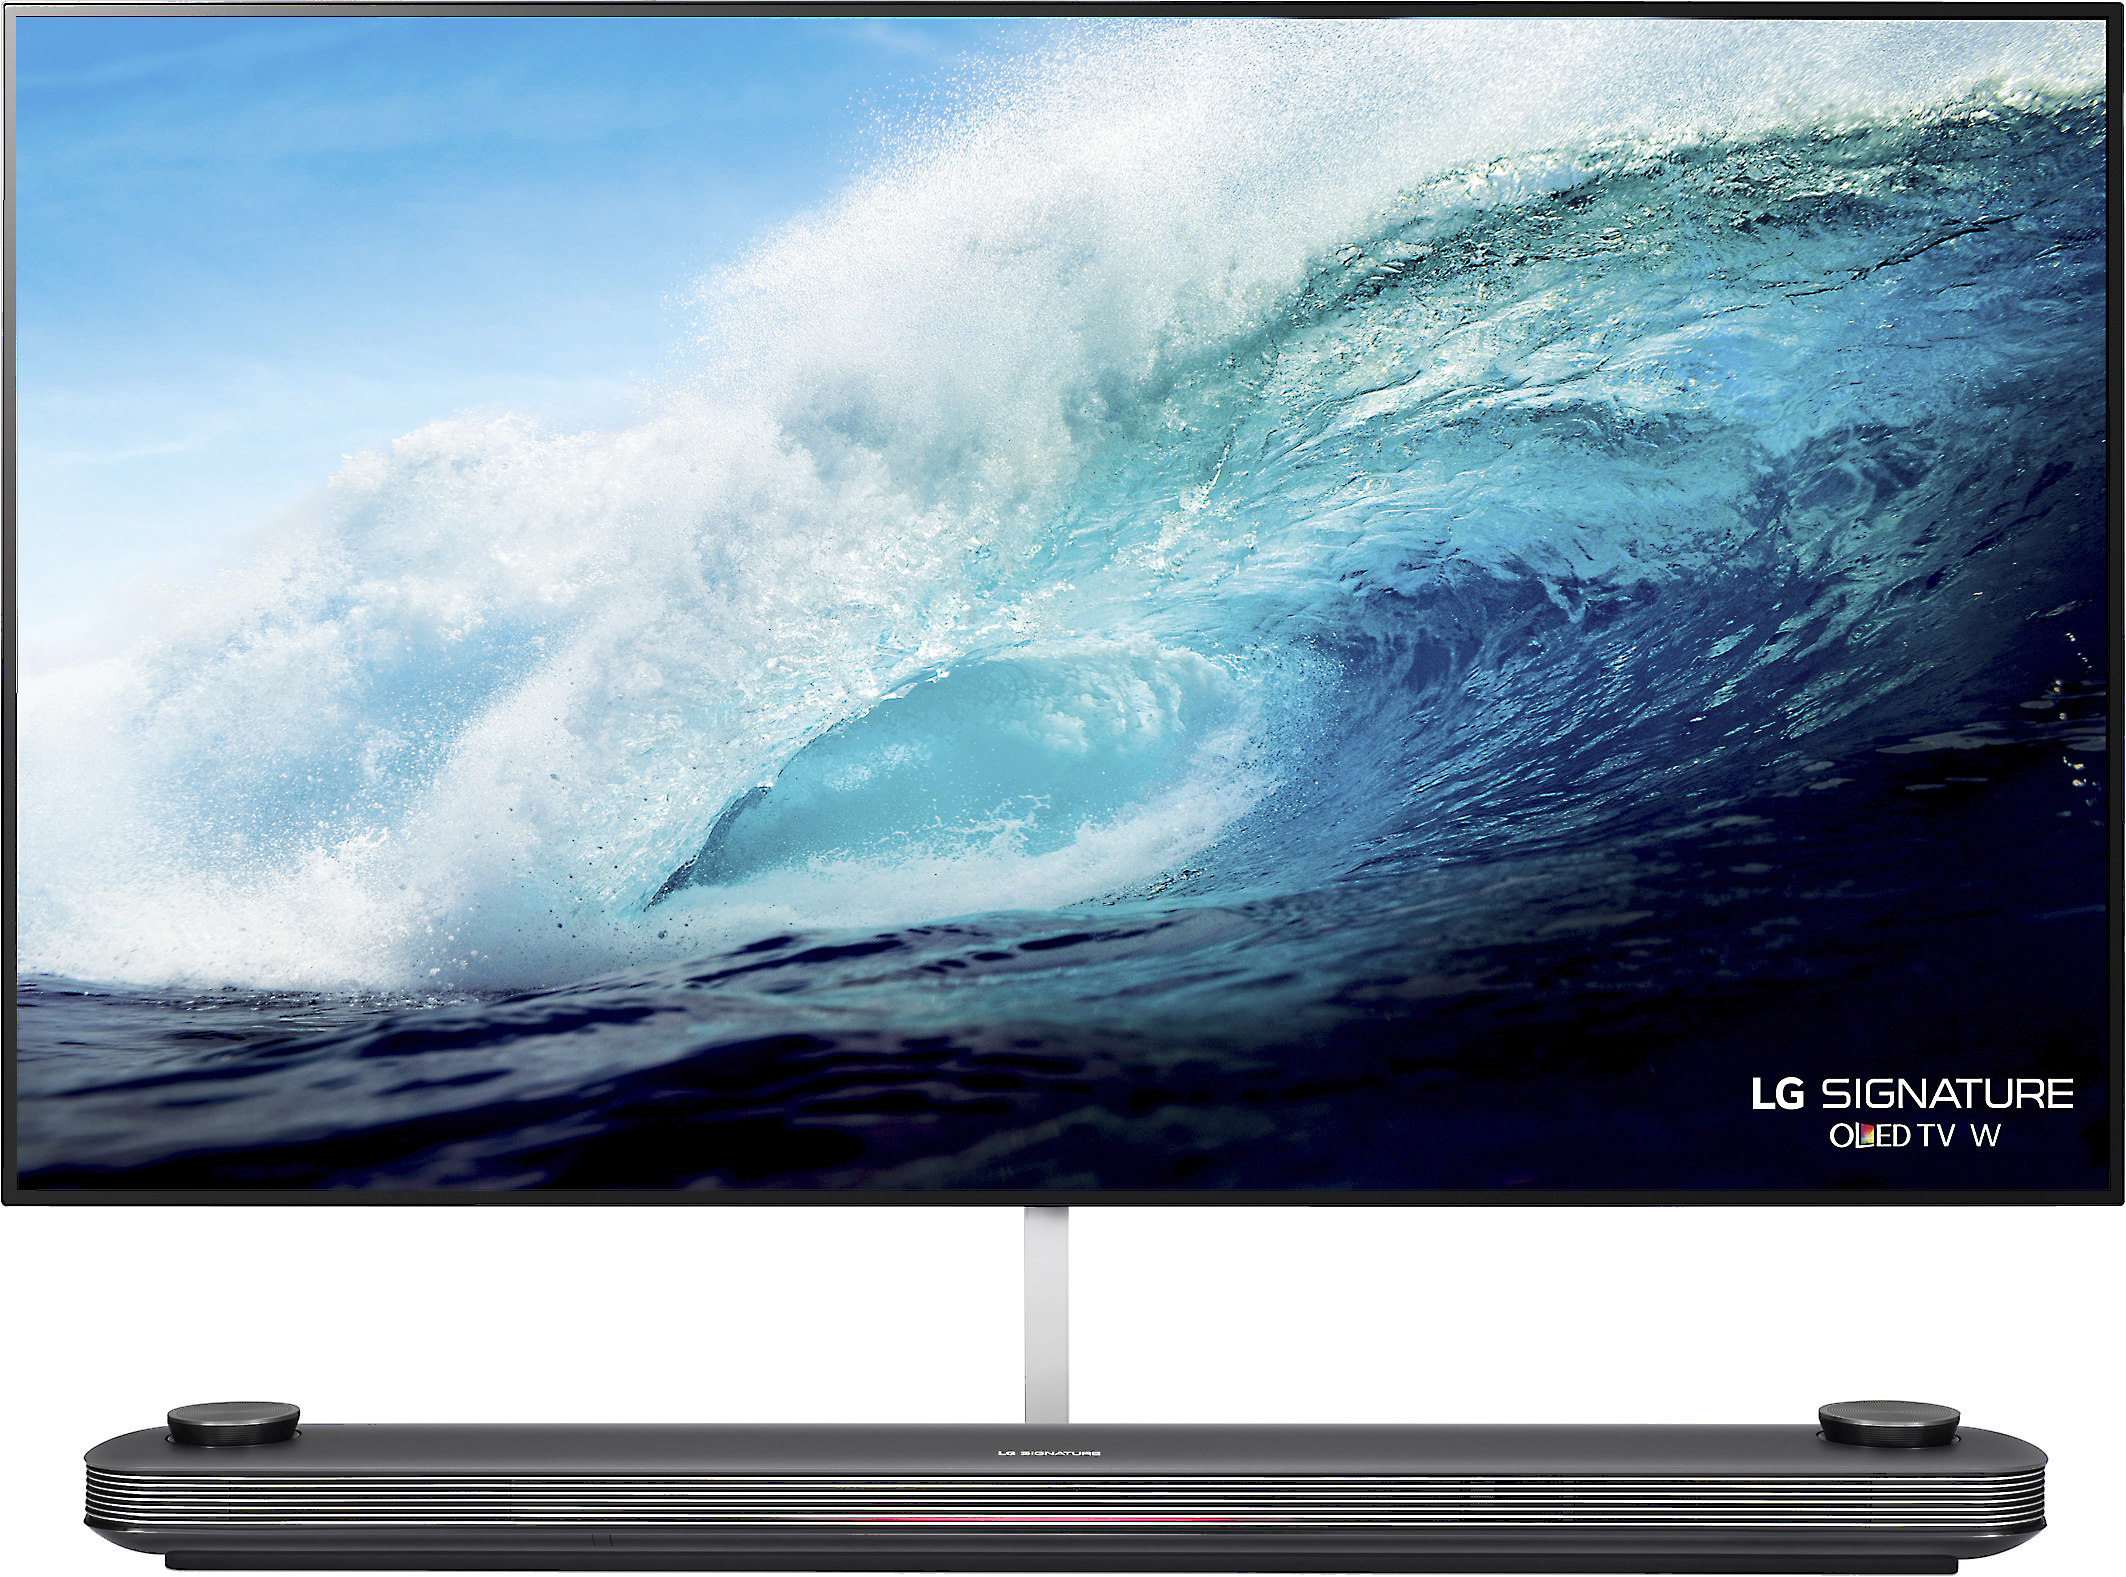 Lg Signature Oled65w7p Wallpaper Tv 65 Smart Oled 4k Ultra Hd Tv With Hdr 2017 Model At Crutchfield